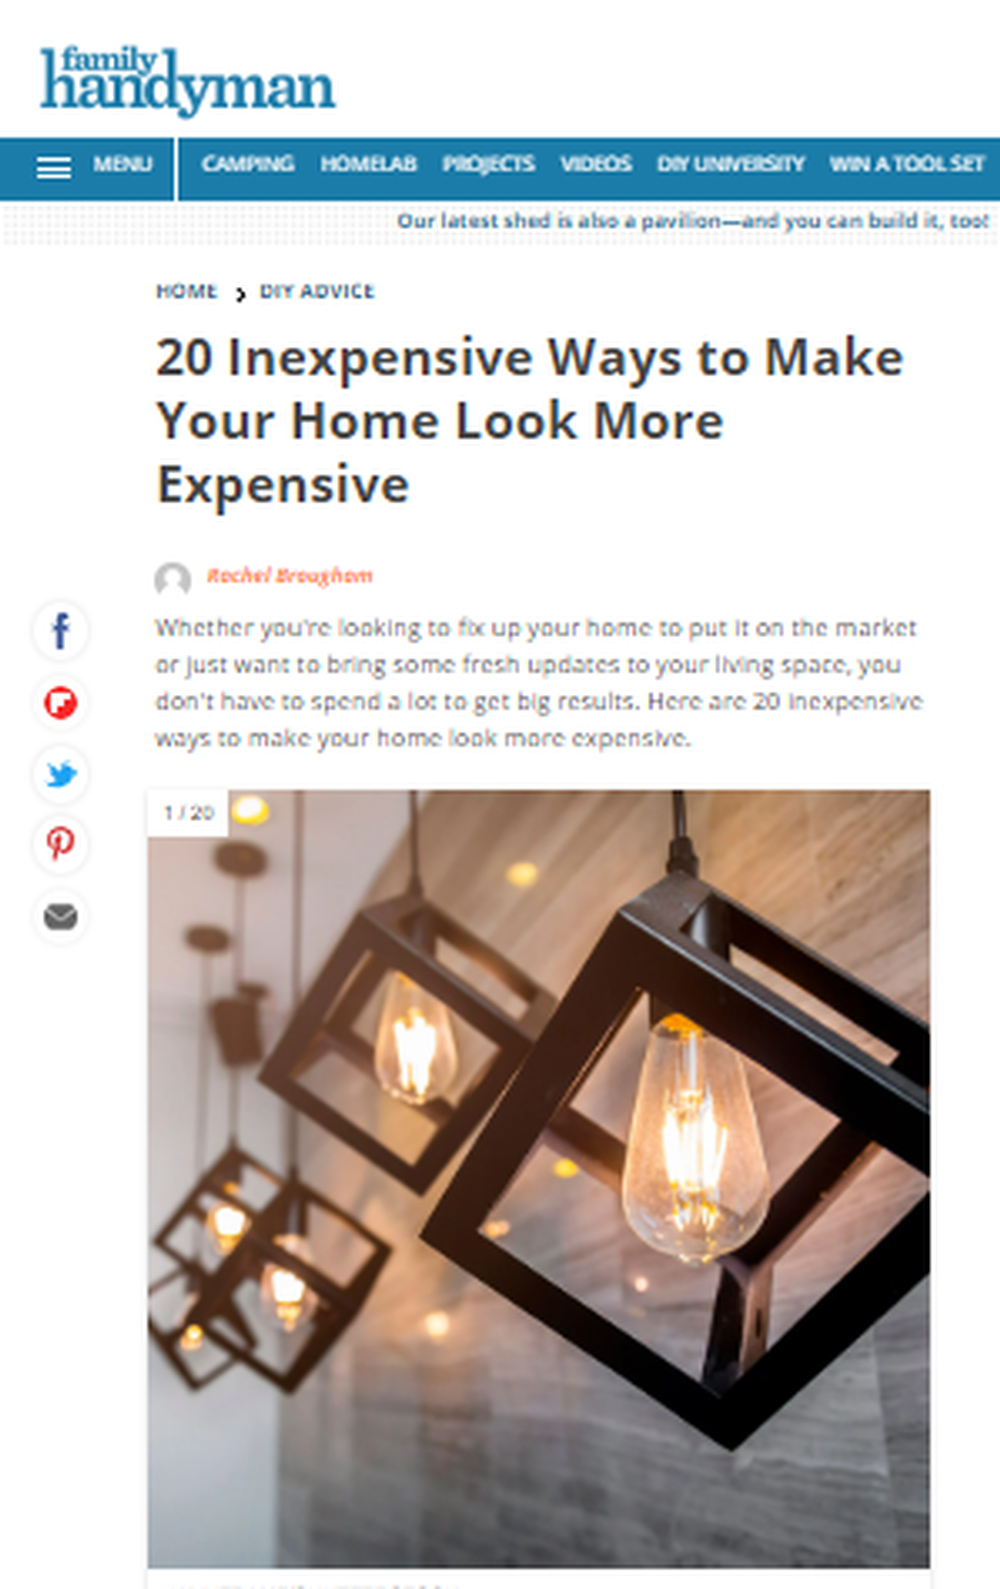 20_Inexpensive_Ways_to_Make_Your_Home_Look_More_Expensive.png